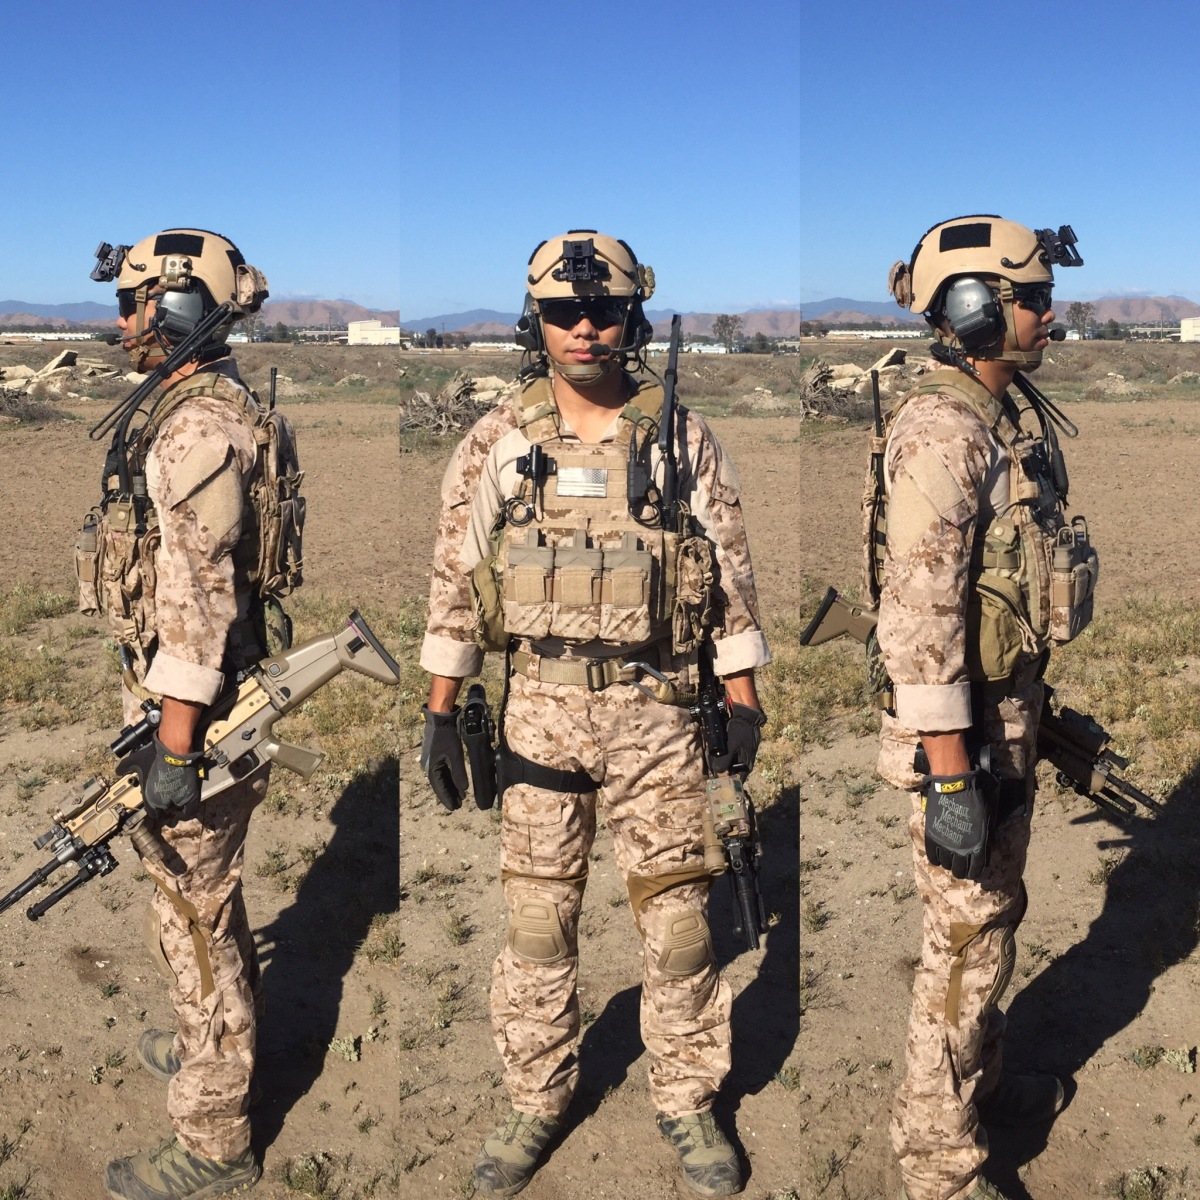 Corpsman A Loadout Interview With Proxxy04 The Reptile